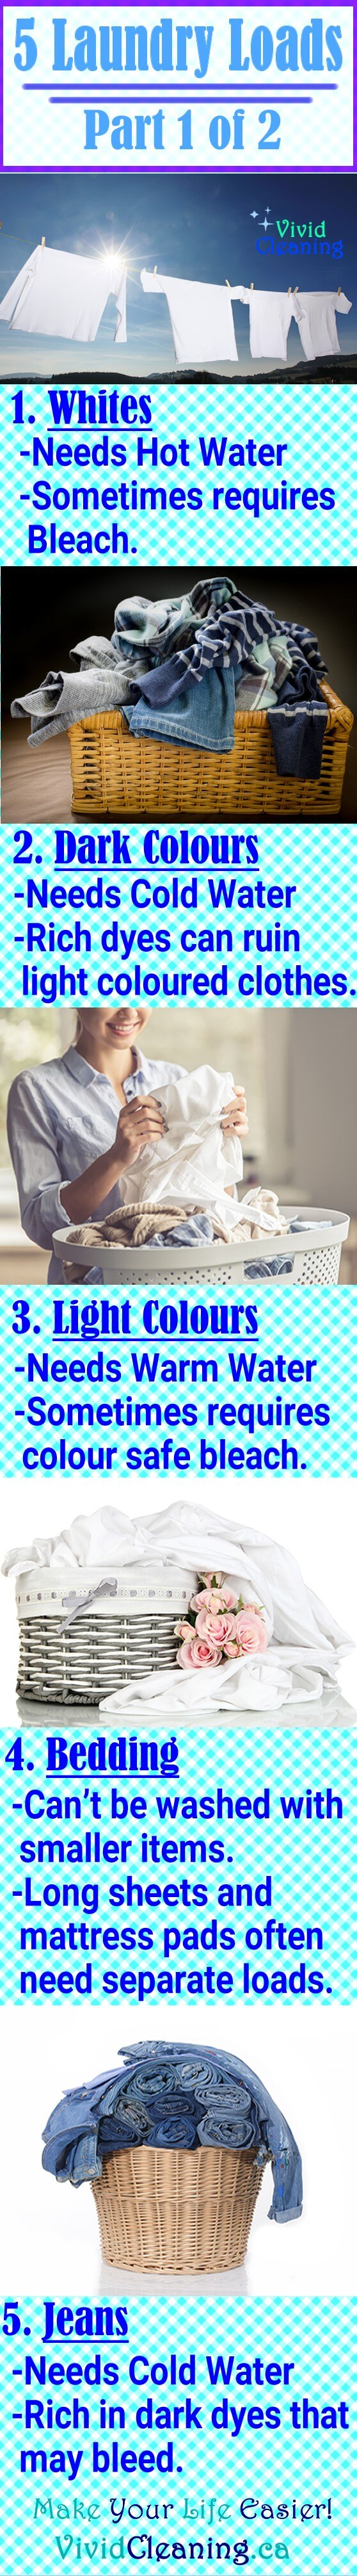 Do get the best laundry cleaning for your clothes you need to separate them by colour and weight. Some items have dyes that will seep into the washing water. Others have coarser material which will ruin finer material if they are washed together. Here are 5 laundry items that need separate washing loads.